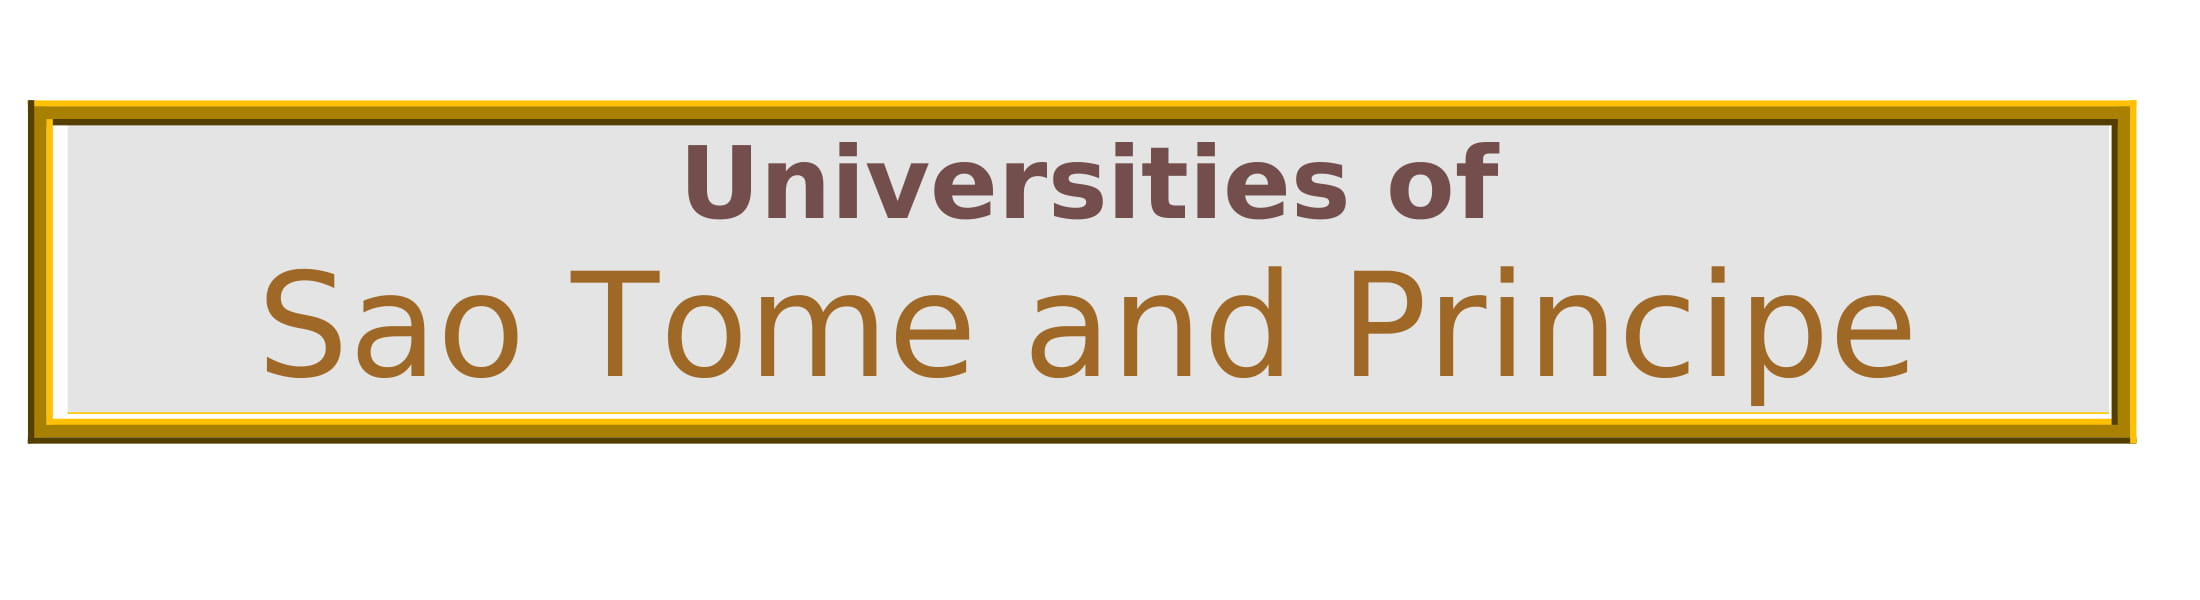 List of Universities in Sao Tome and Principe